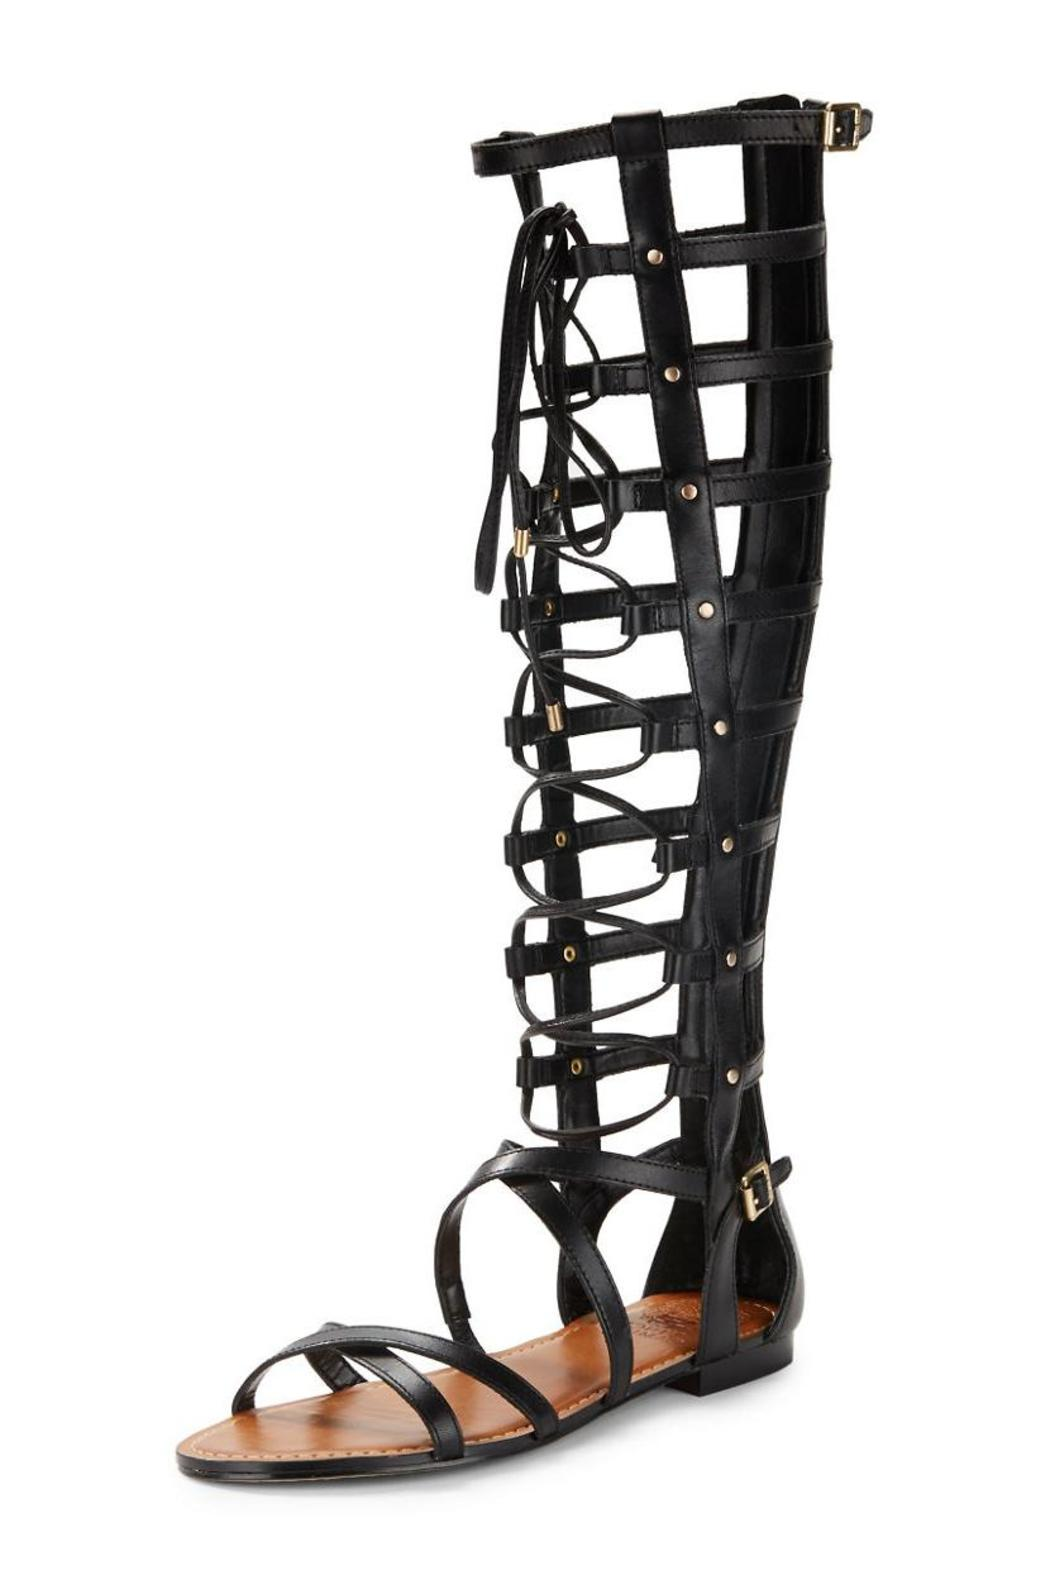 b21a85c3864 Vince Camuto Mesta Gladiator Sandal from Hudson Valley by Bfree ...